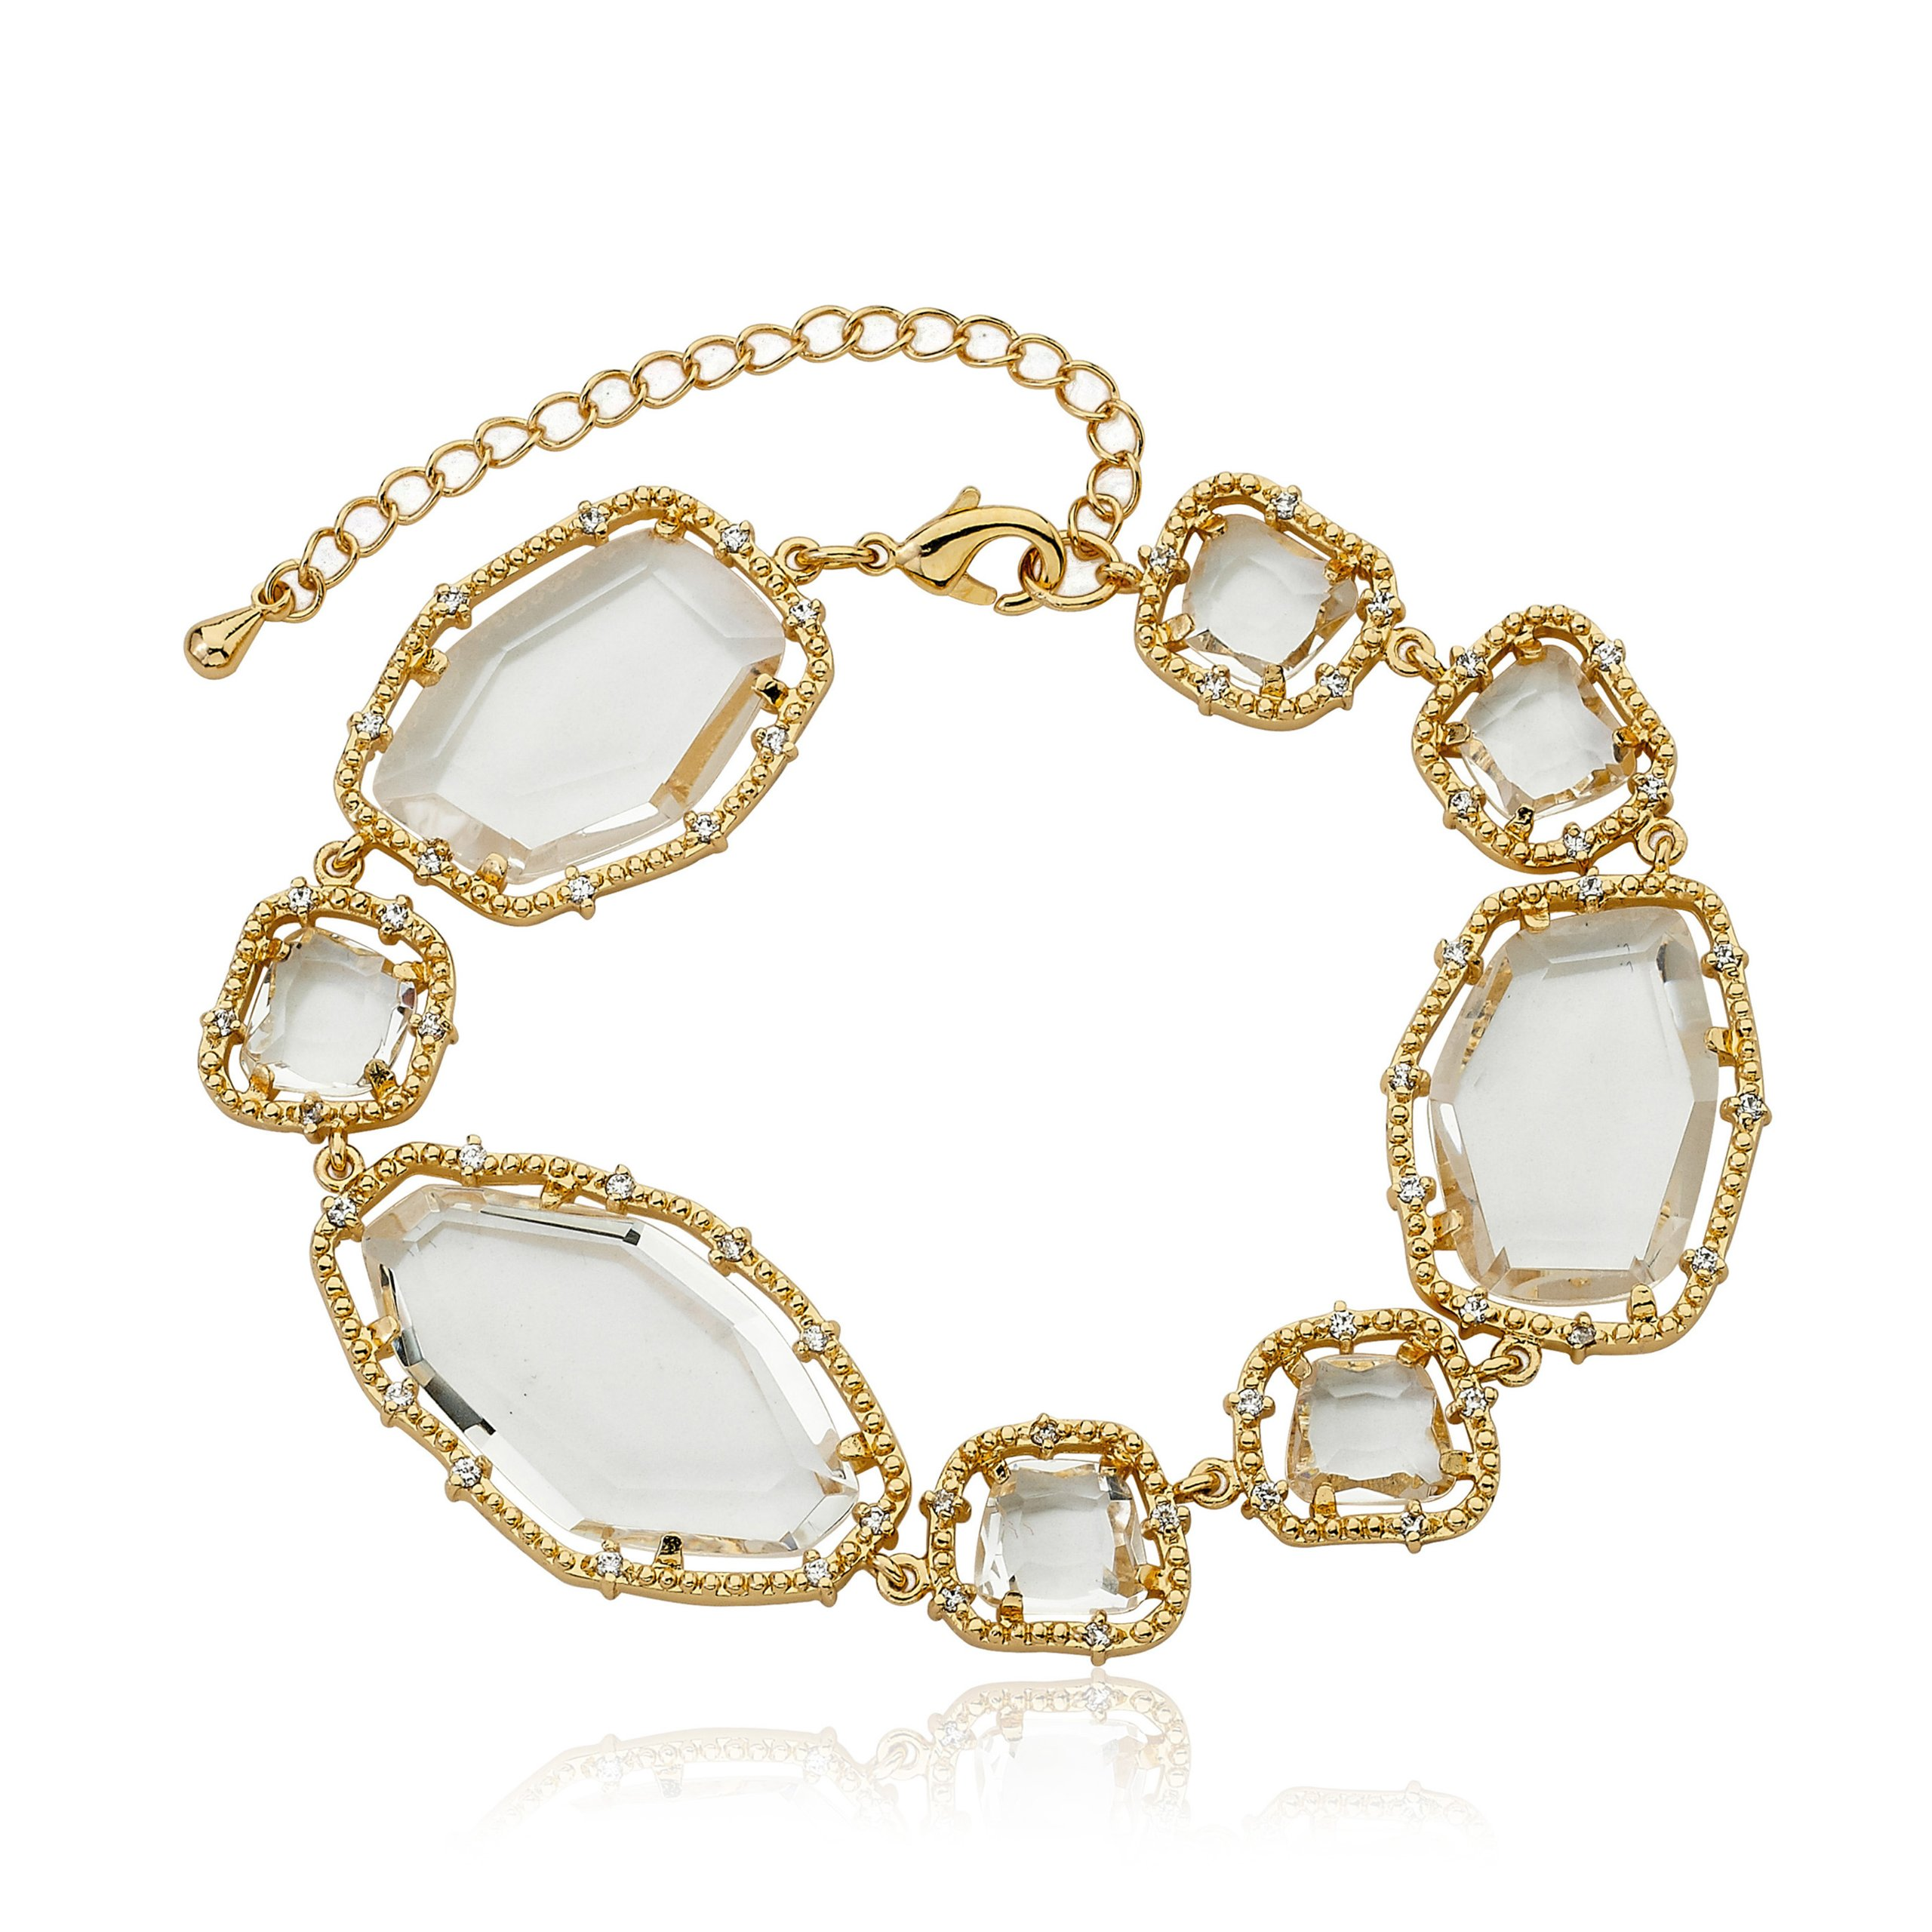 Riccova Sliced Glass 14k Gold-Plated CZ (Prong Setting) Clear Glass Sliced Stones Bracelet 7''/Ext. by Riccova